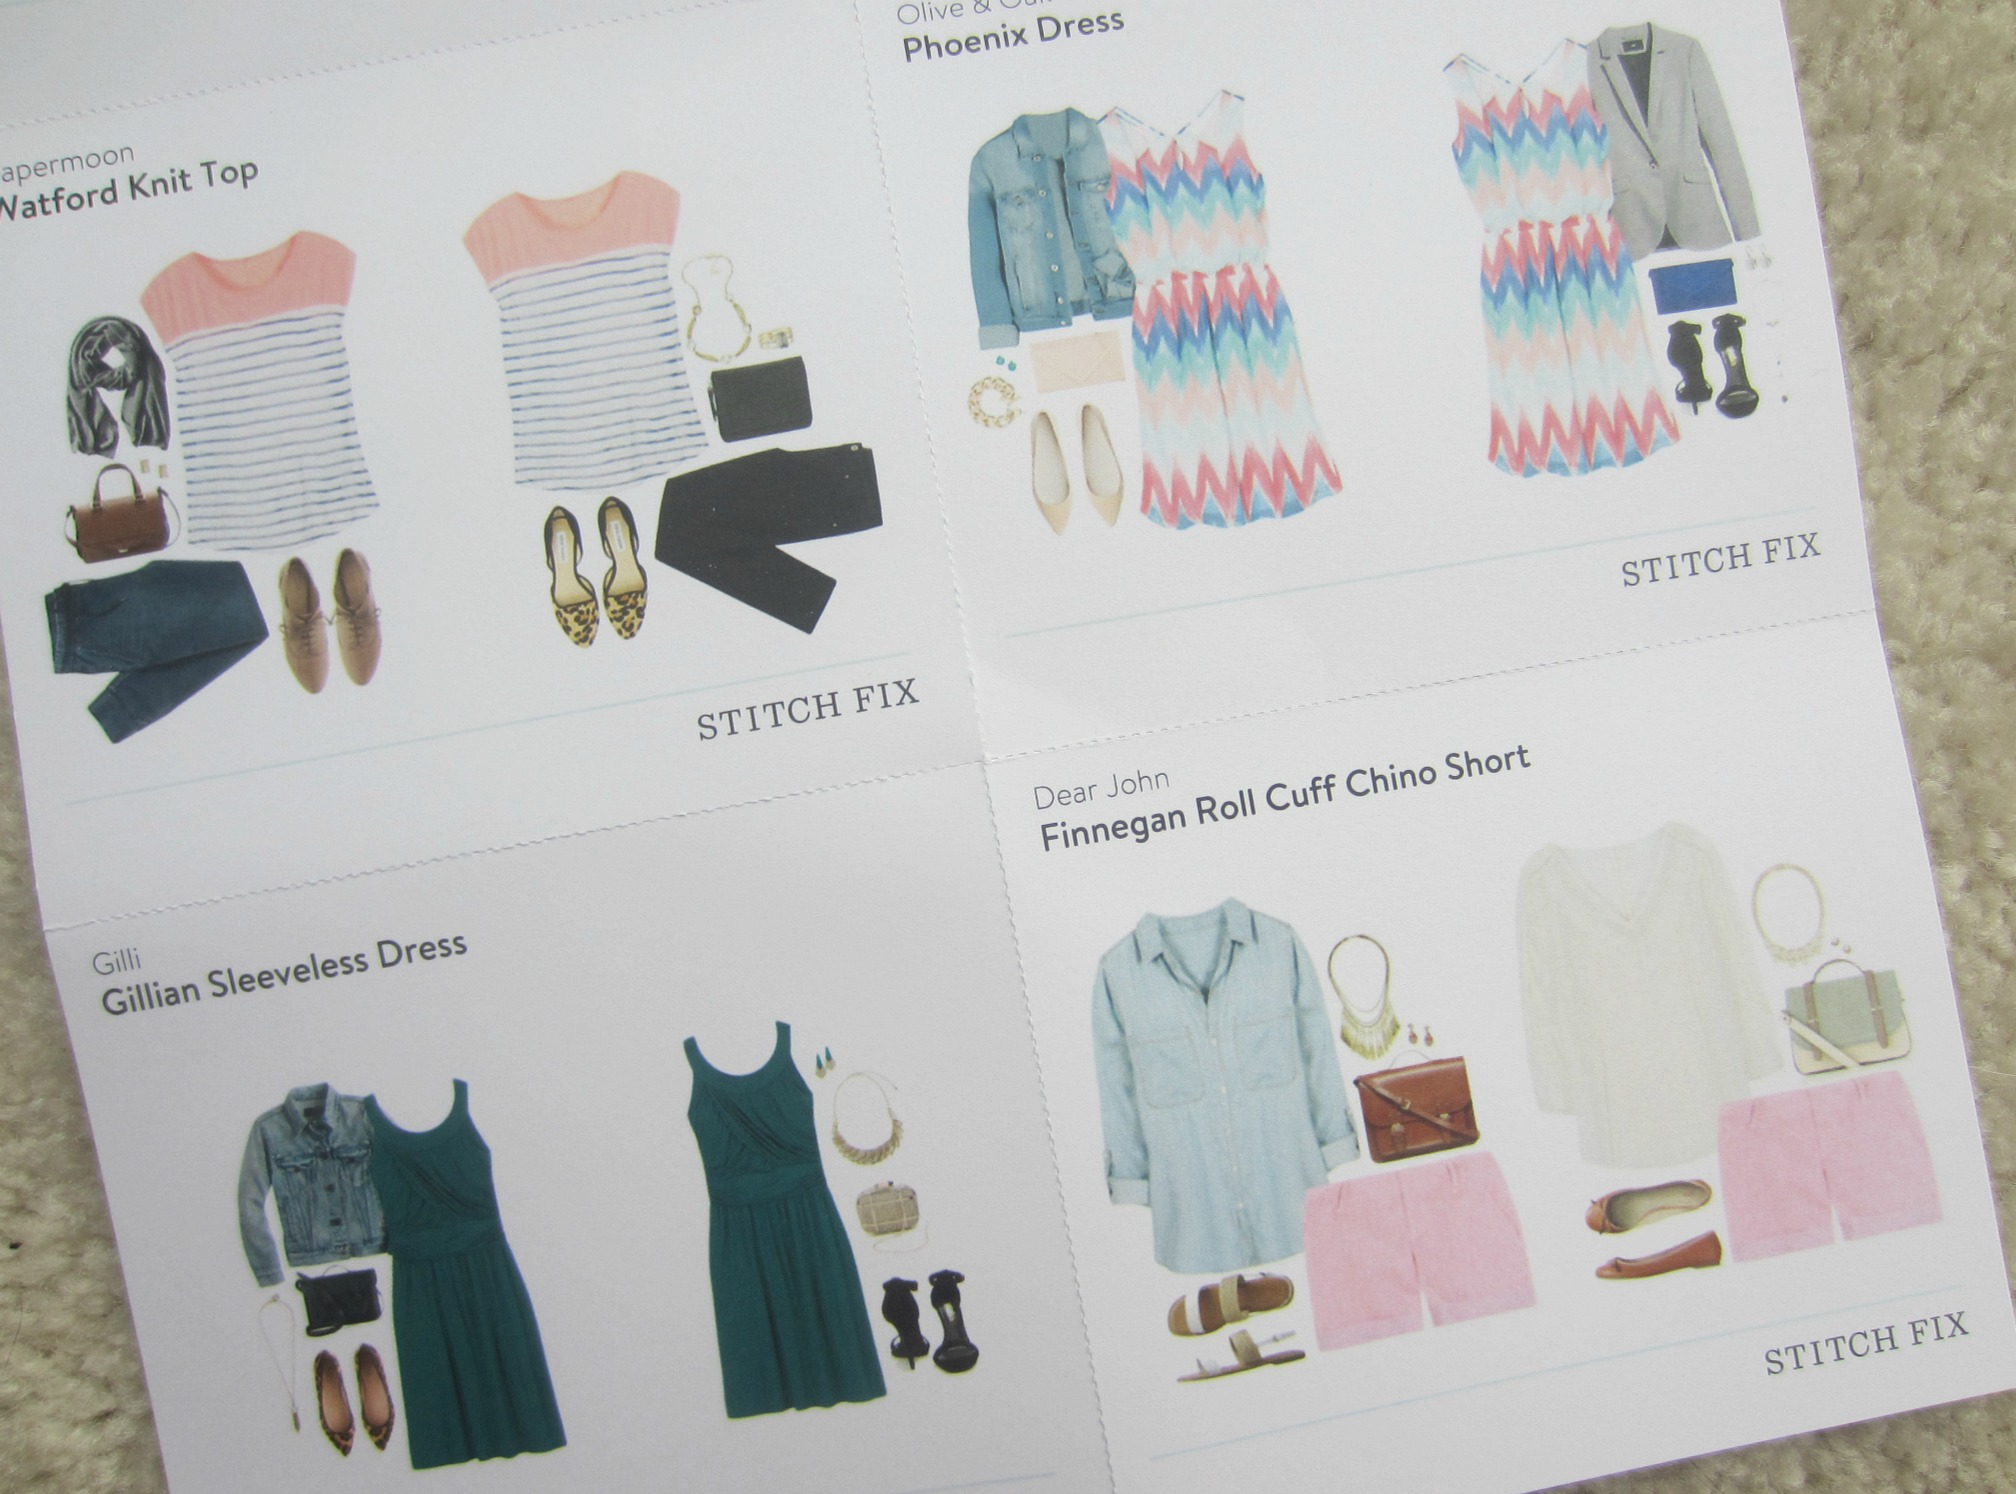 stitch fix styling fashion sheet